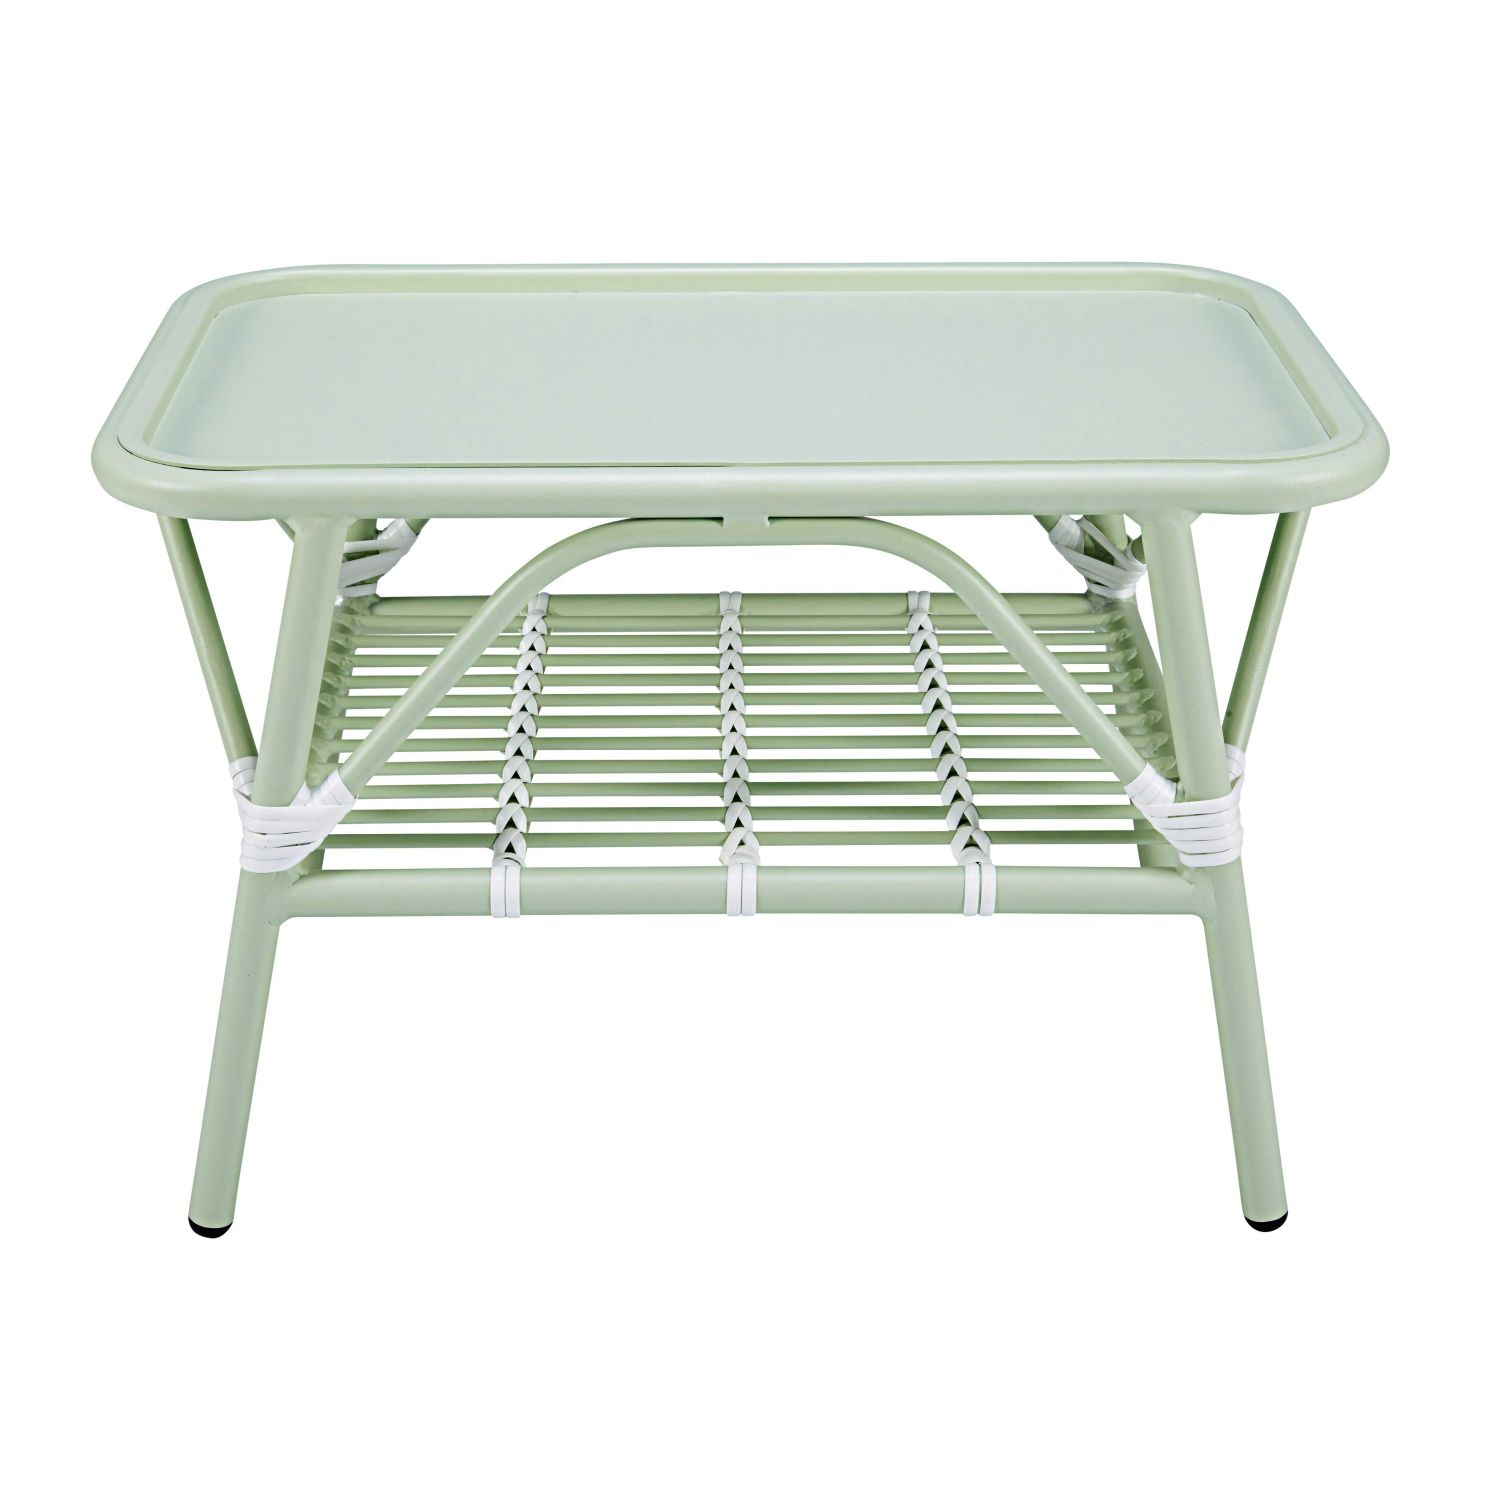 Garden Coffee Table In Light Green And White Aluminium Maisons Du Monde